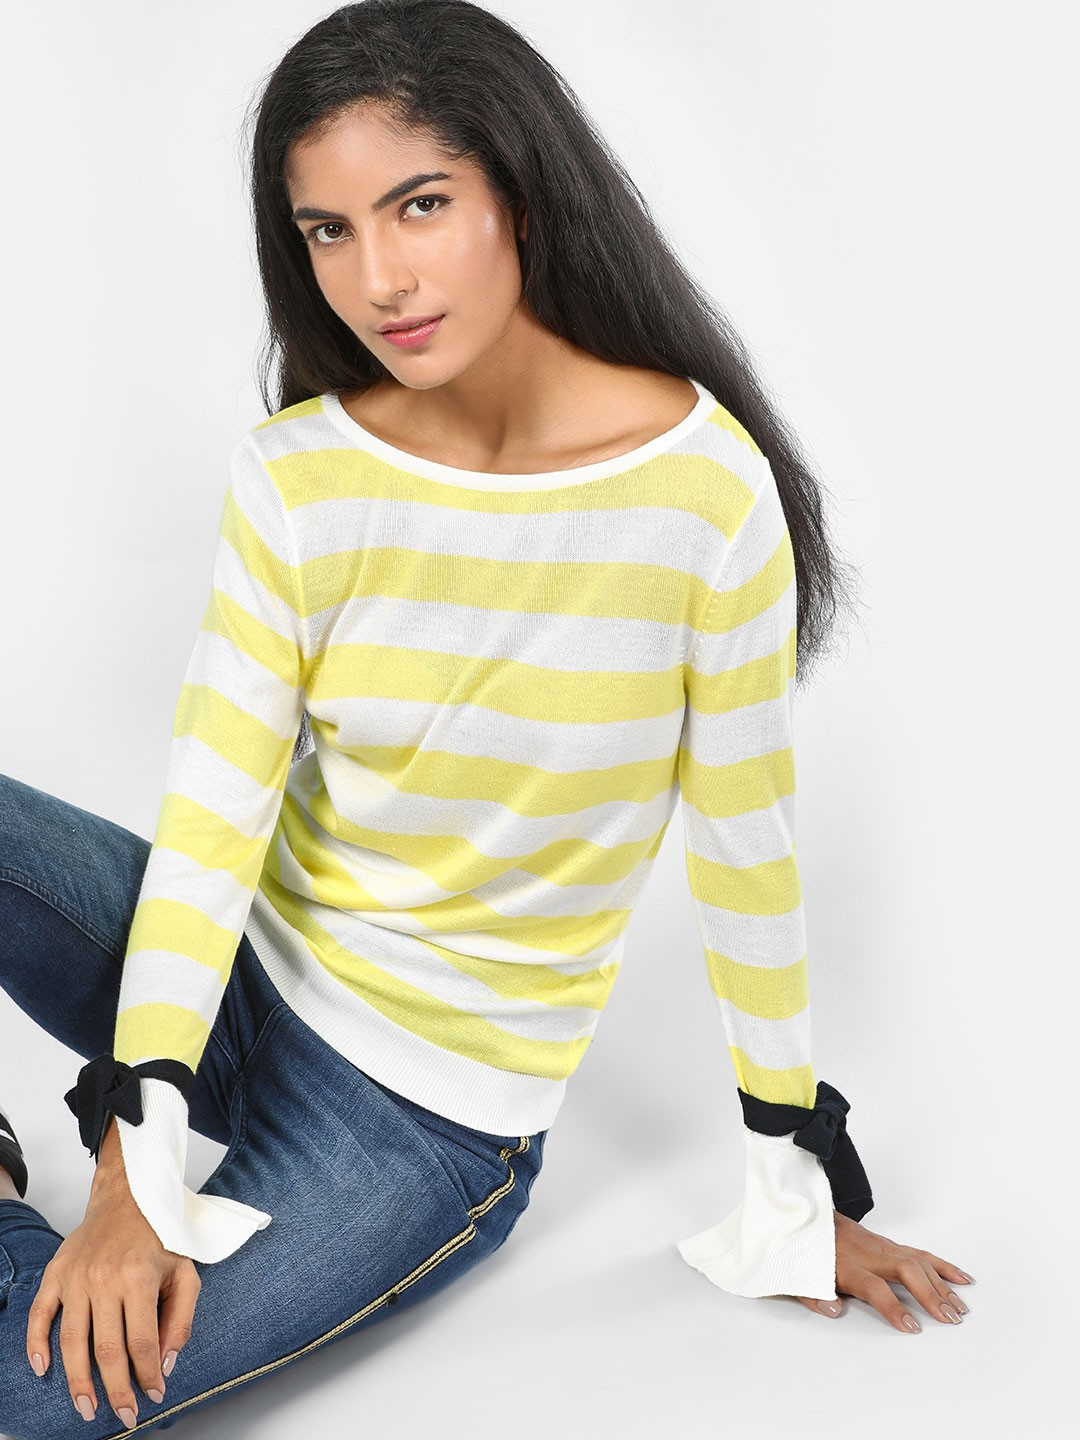 SCULLERS FOR HER White Tie Sleeve Striped Knitted Top 1